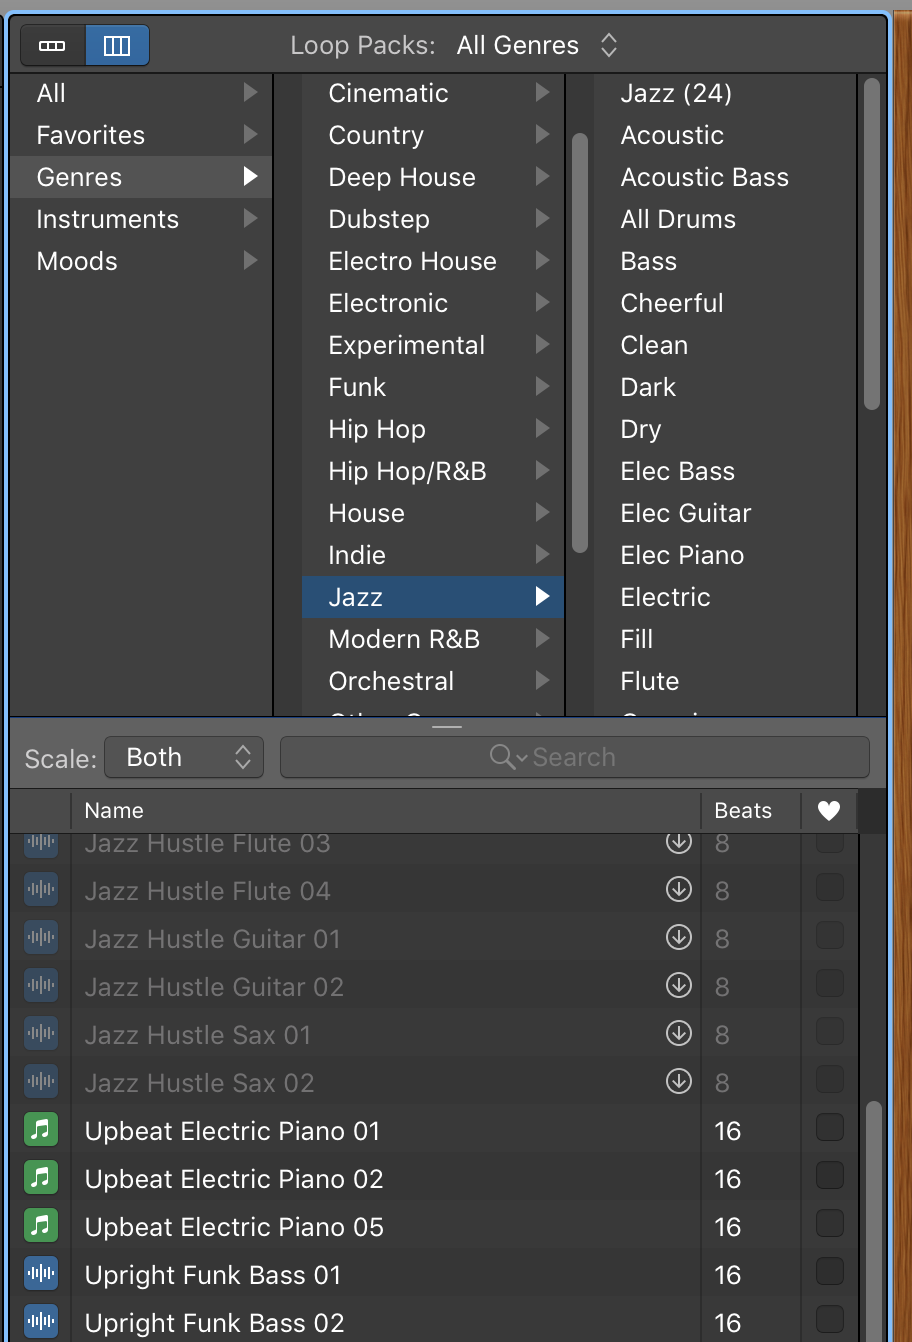 Fades, Volume Adjustment, Music, and Sound Effects in GarageBand